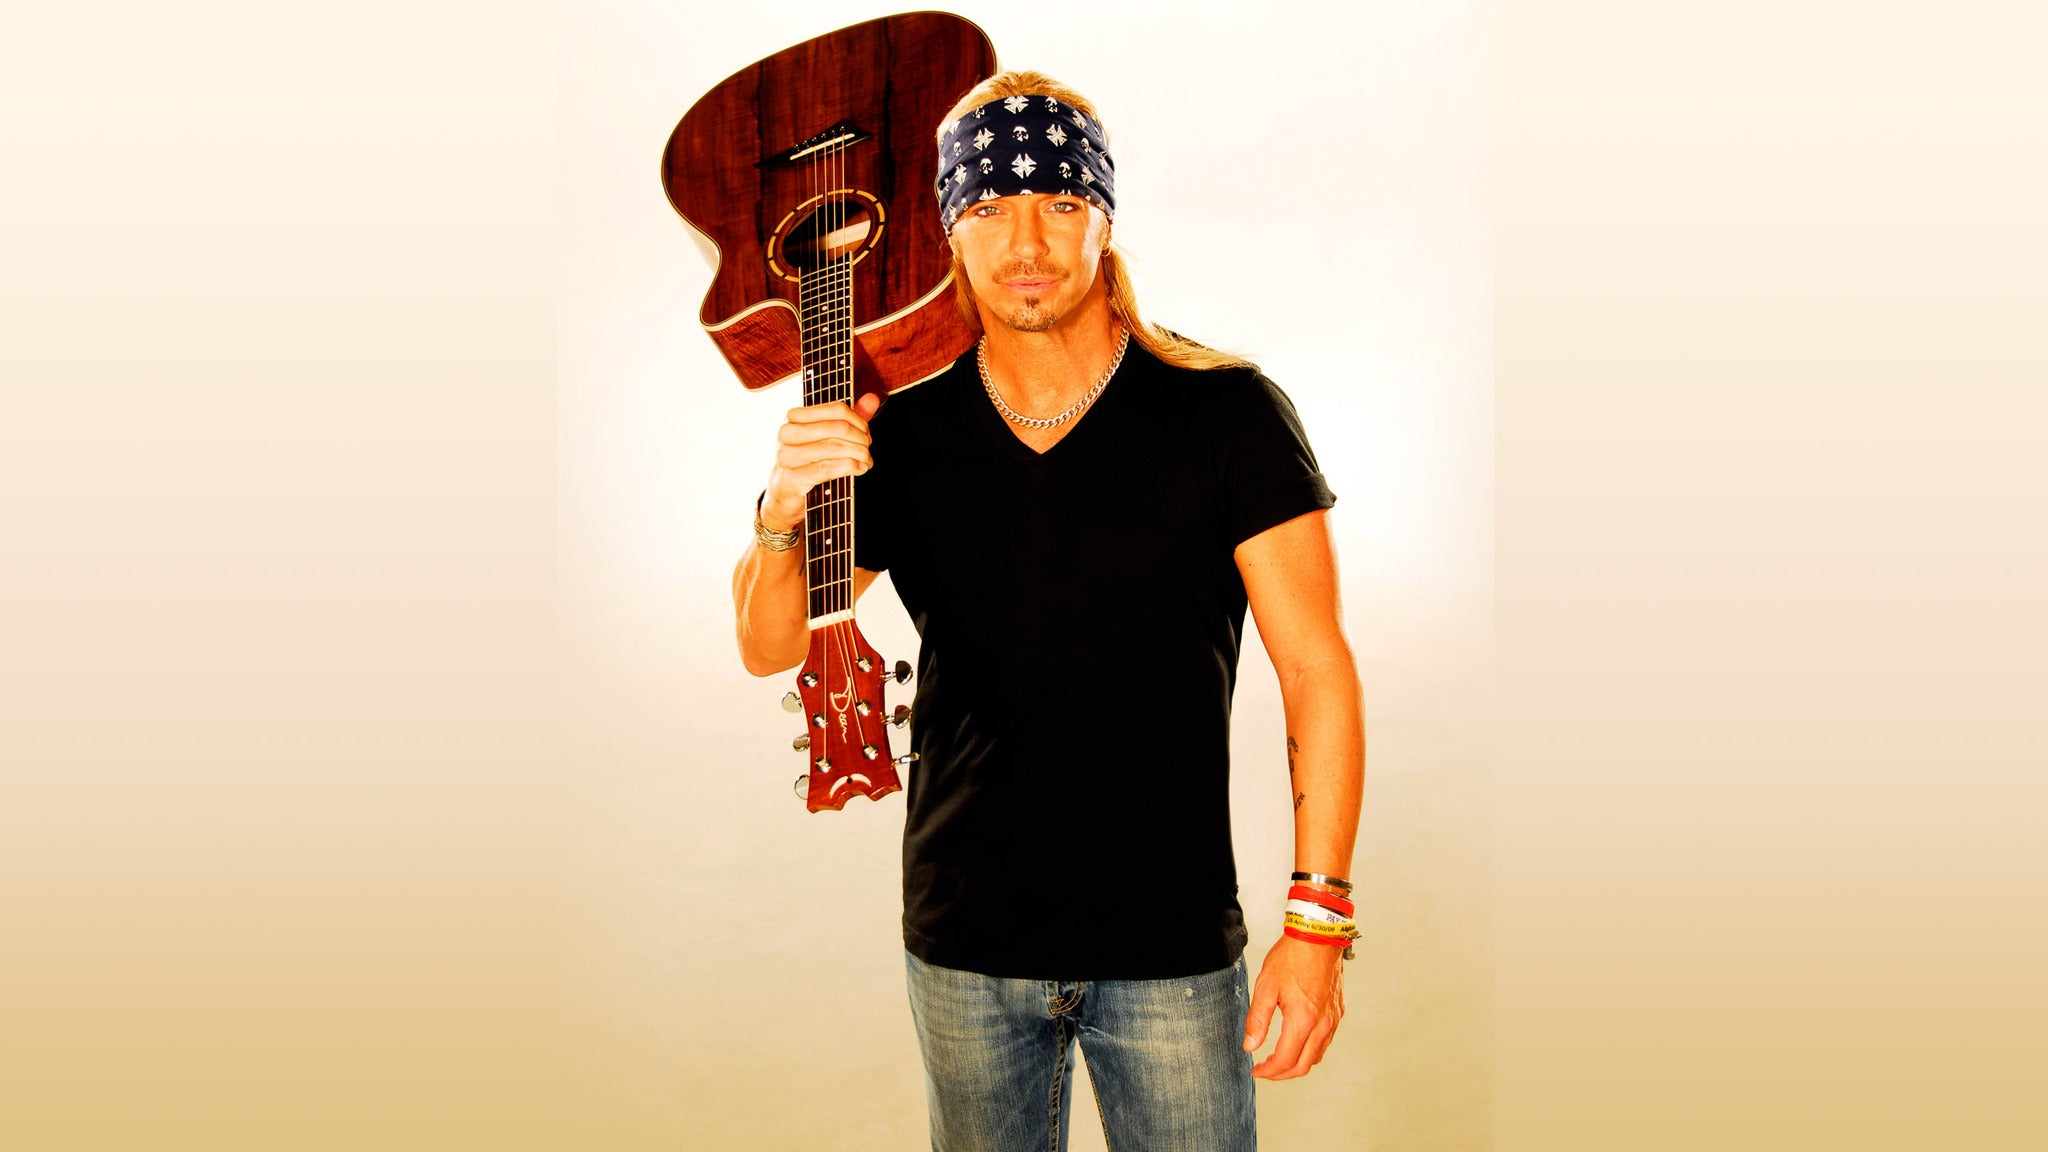 Bret Michaels at Golden Nugget - Lake Charles - Lake Charles, LA 70601